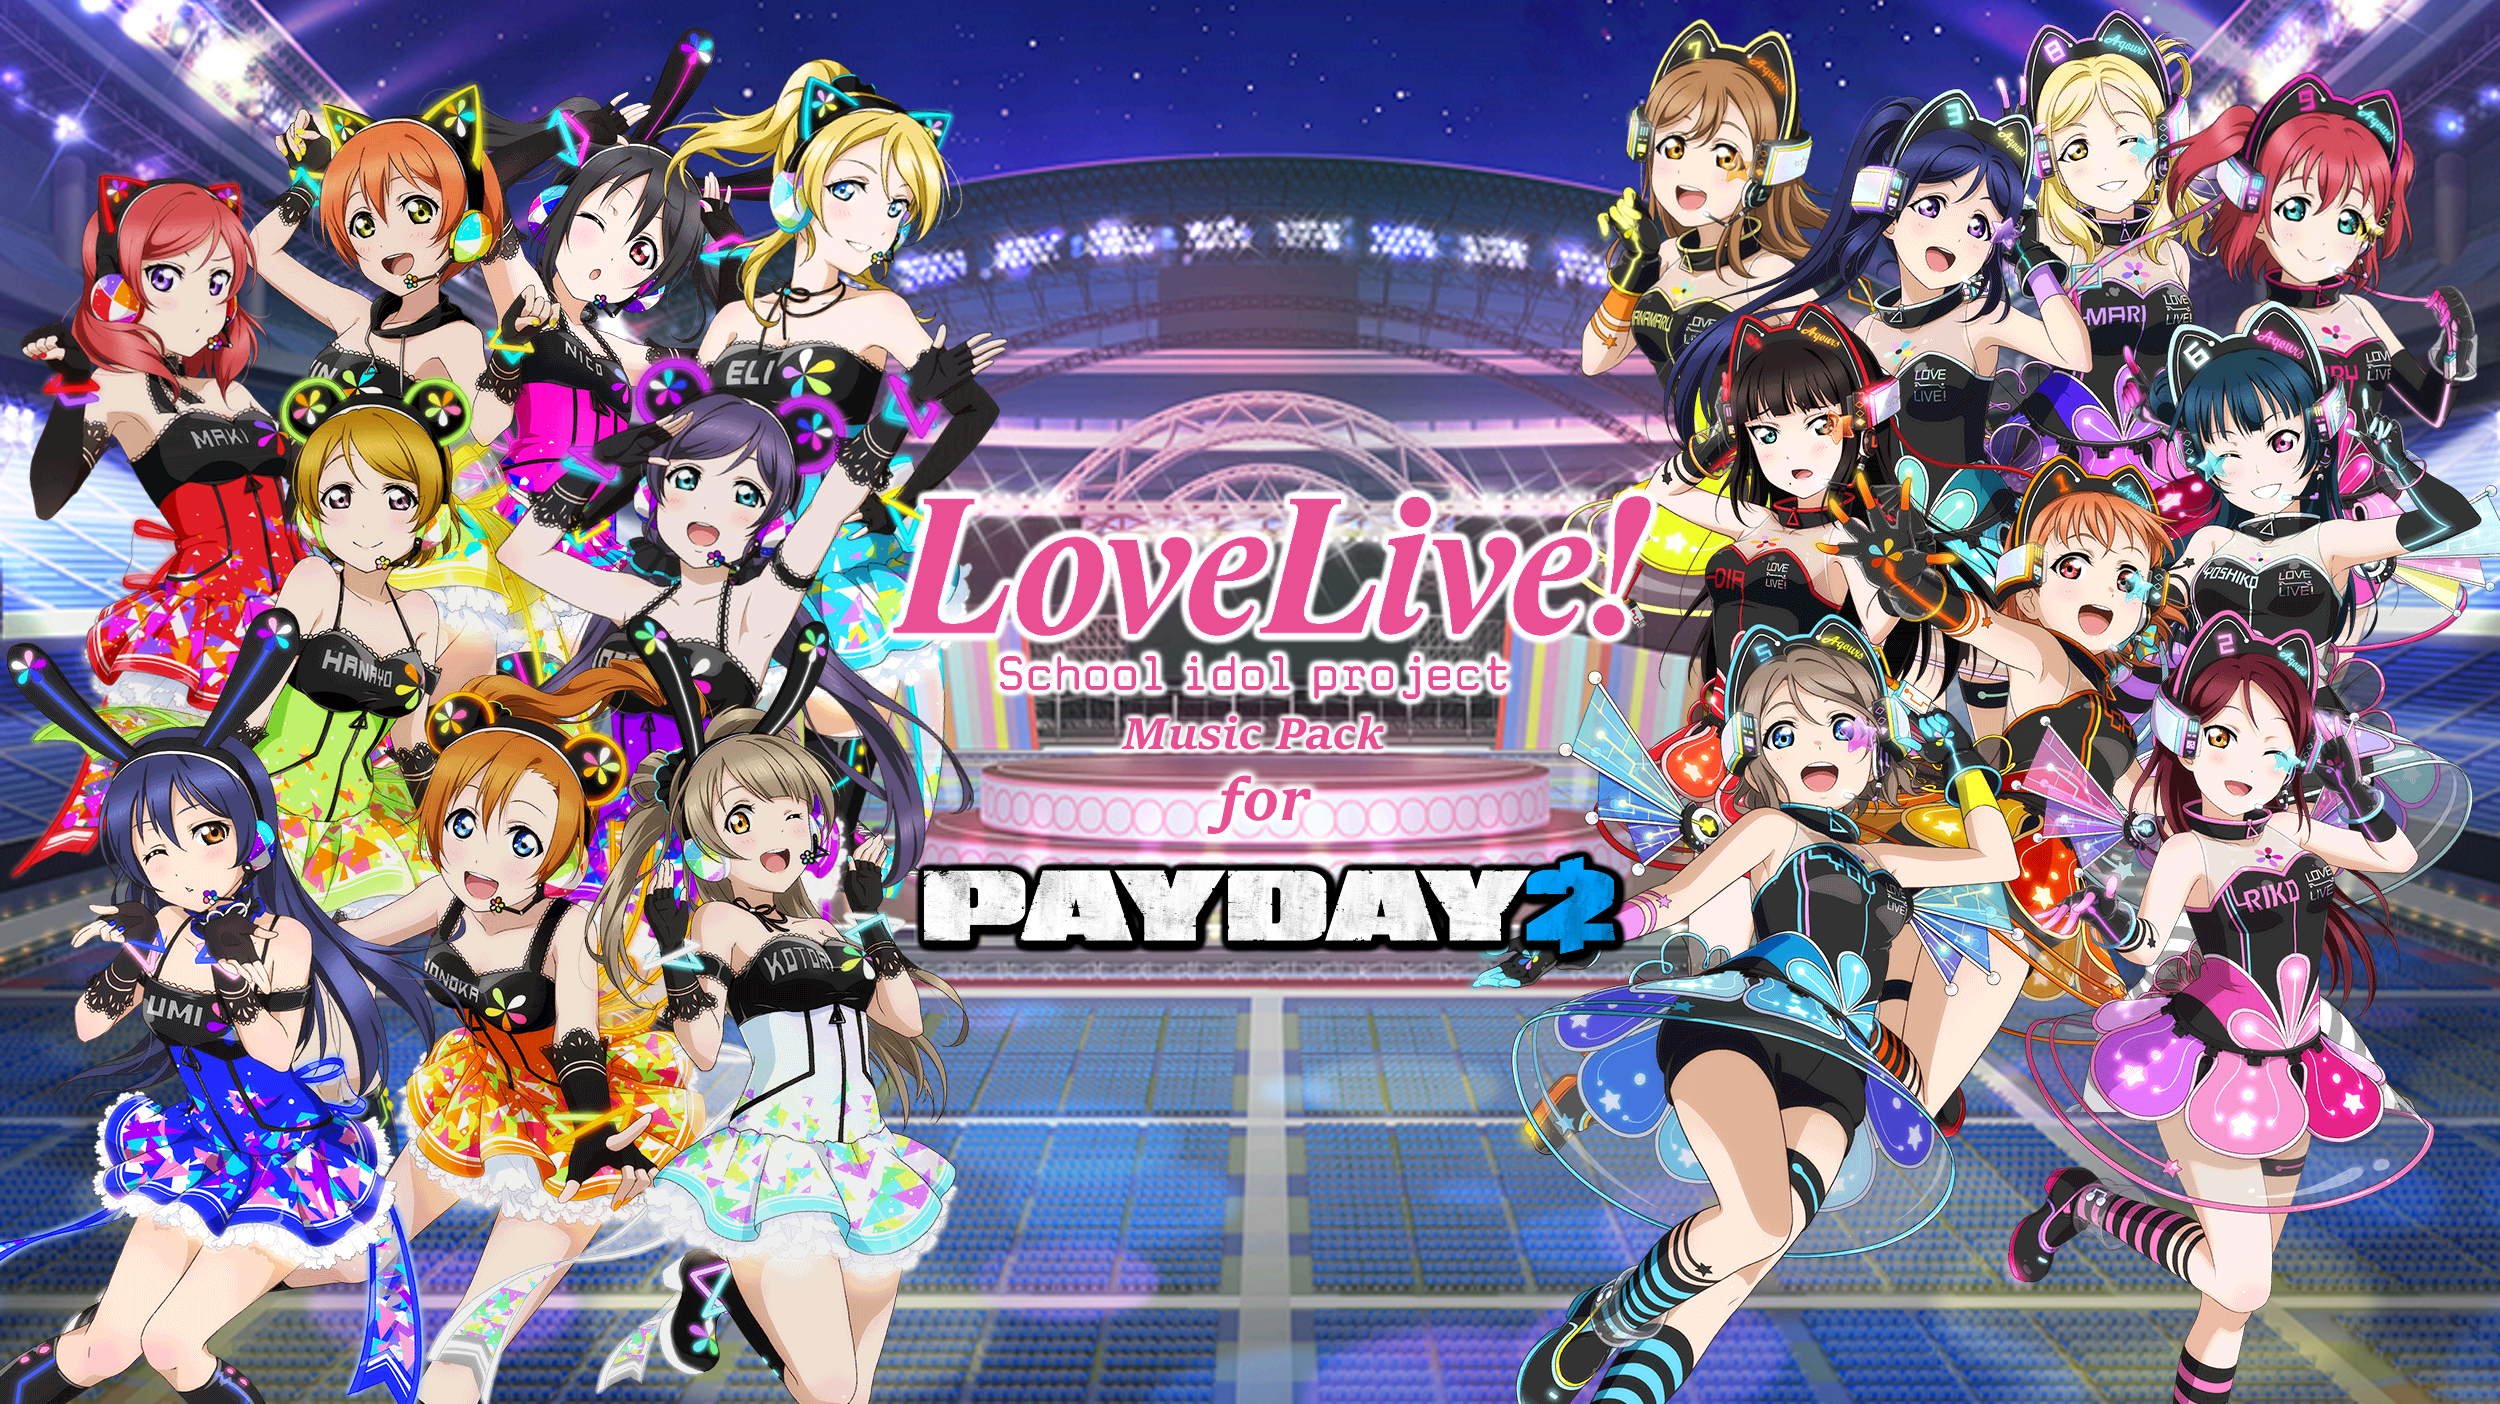 Love Live! Music Pack - Mods